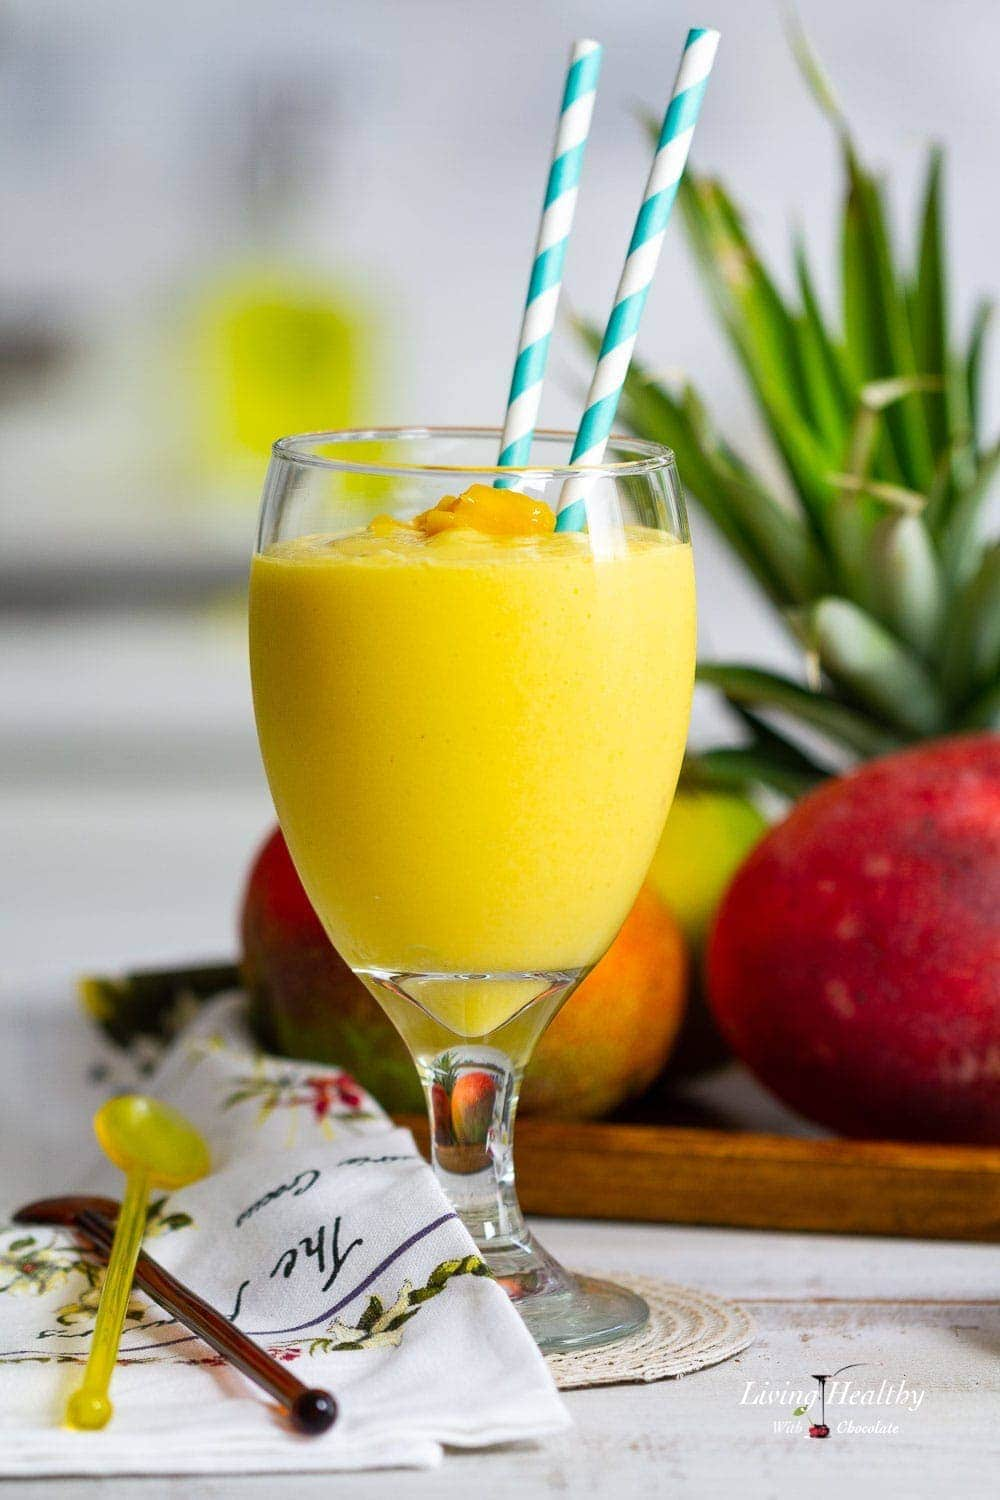 A close up of a mango smoothie with a plate of pineapple and mango behind